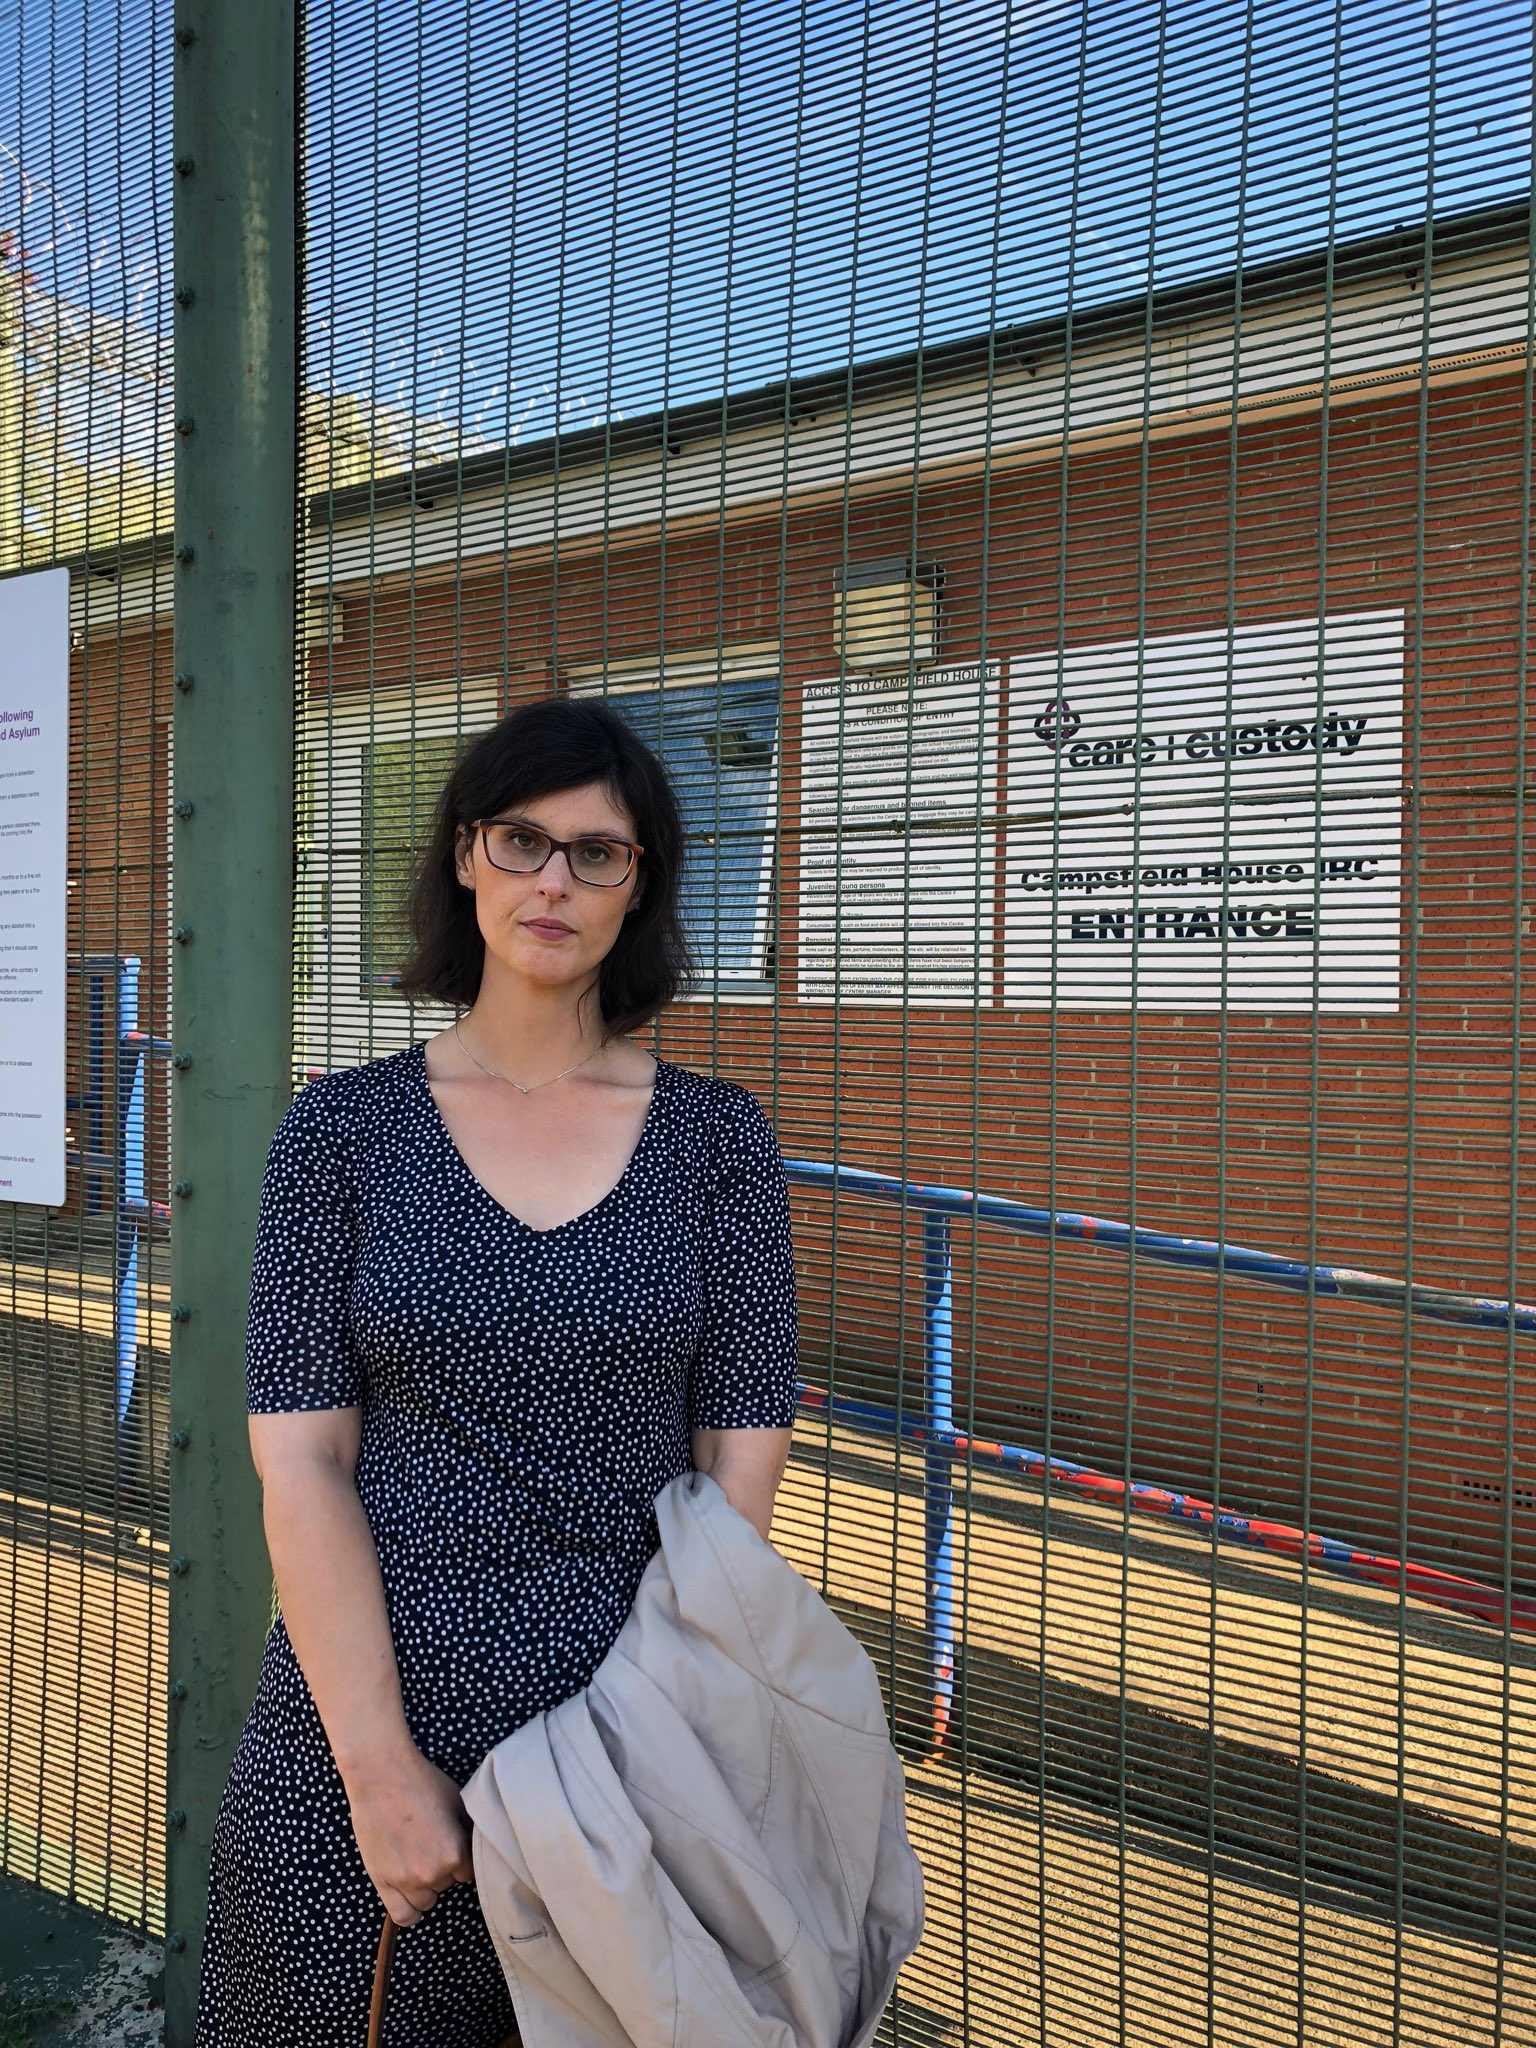 Layla_Moran_MP_outside_Campsfield_House_in_Kidlington.jpeg